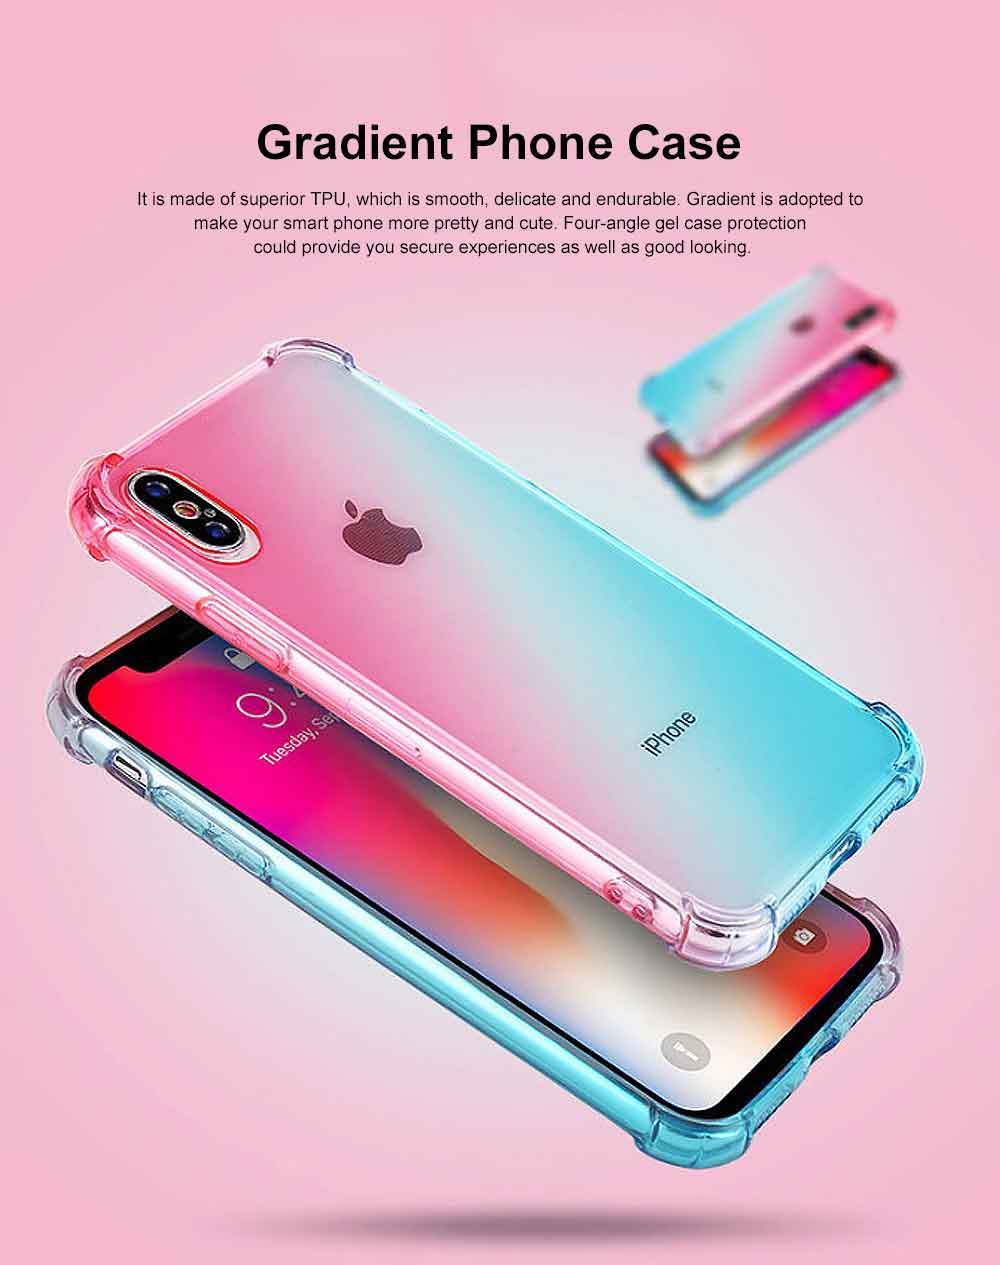 Gradient Phone Case, Ultrathin Soft TPU Case Cover with Bumper, Four-angle Gel Case Protection, Minimalist Phone Case for iPhone 0